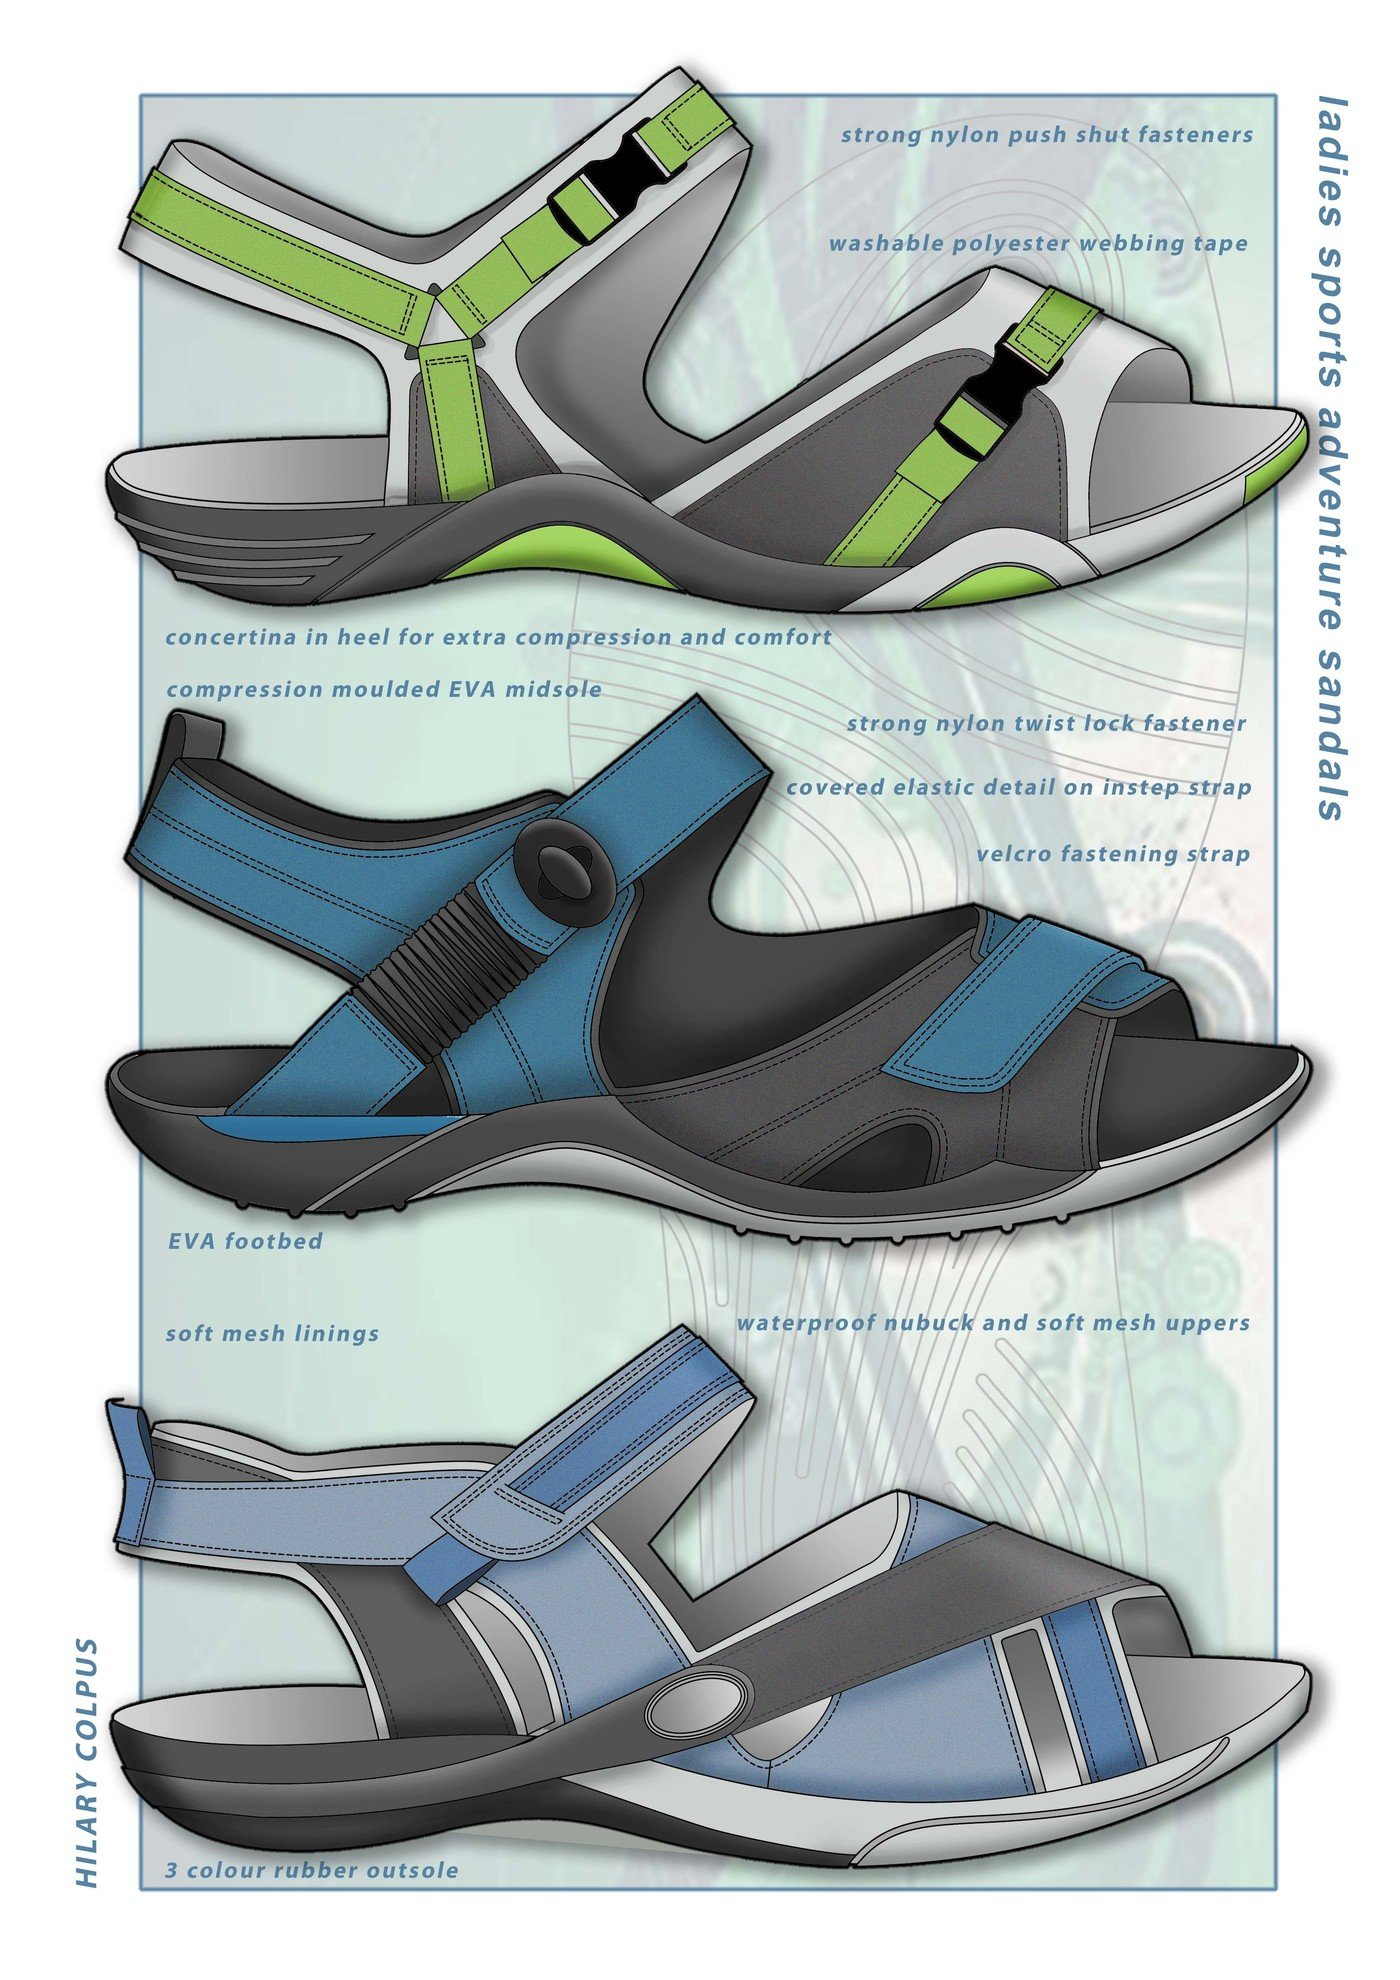 Ladies Sports Sandals by Hilary Colpus